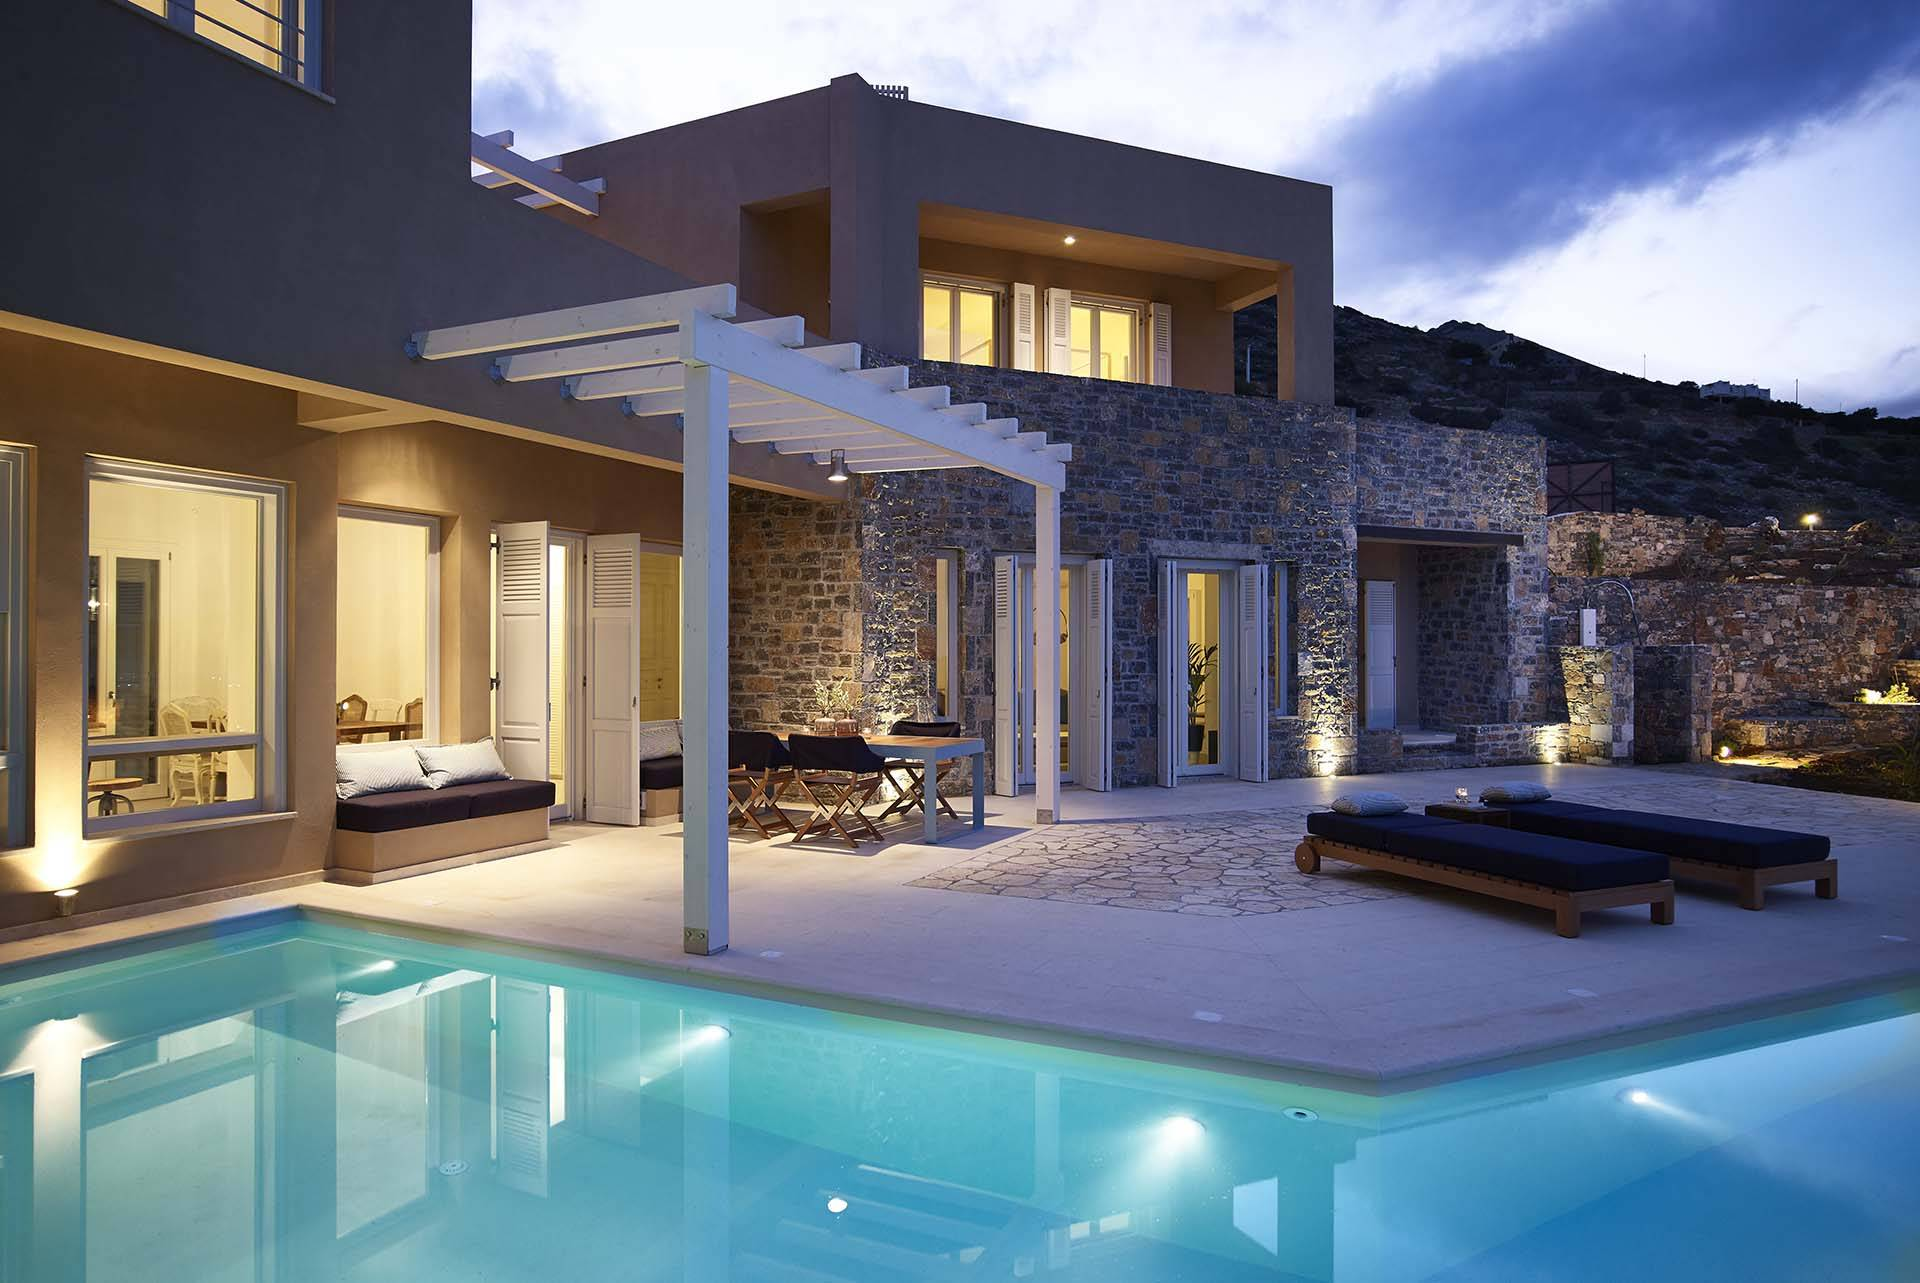 Crete luxury villa Mirabello II in Elounda